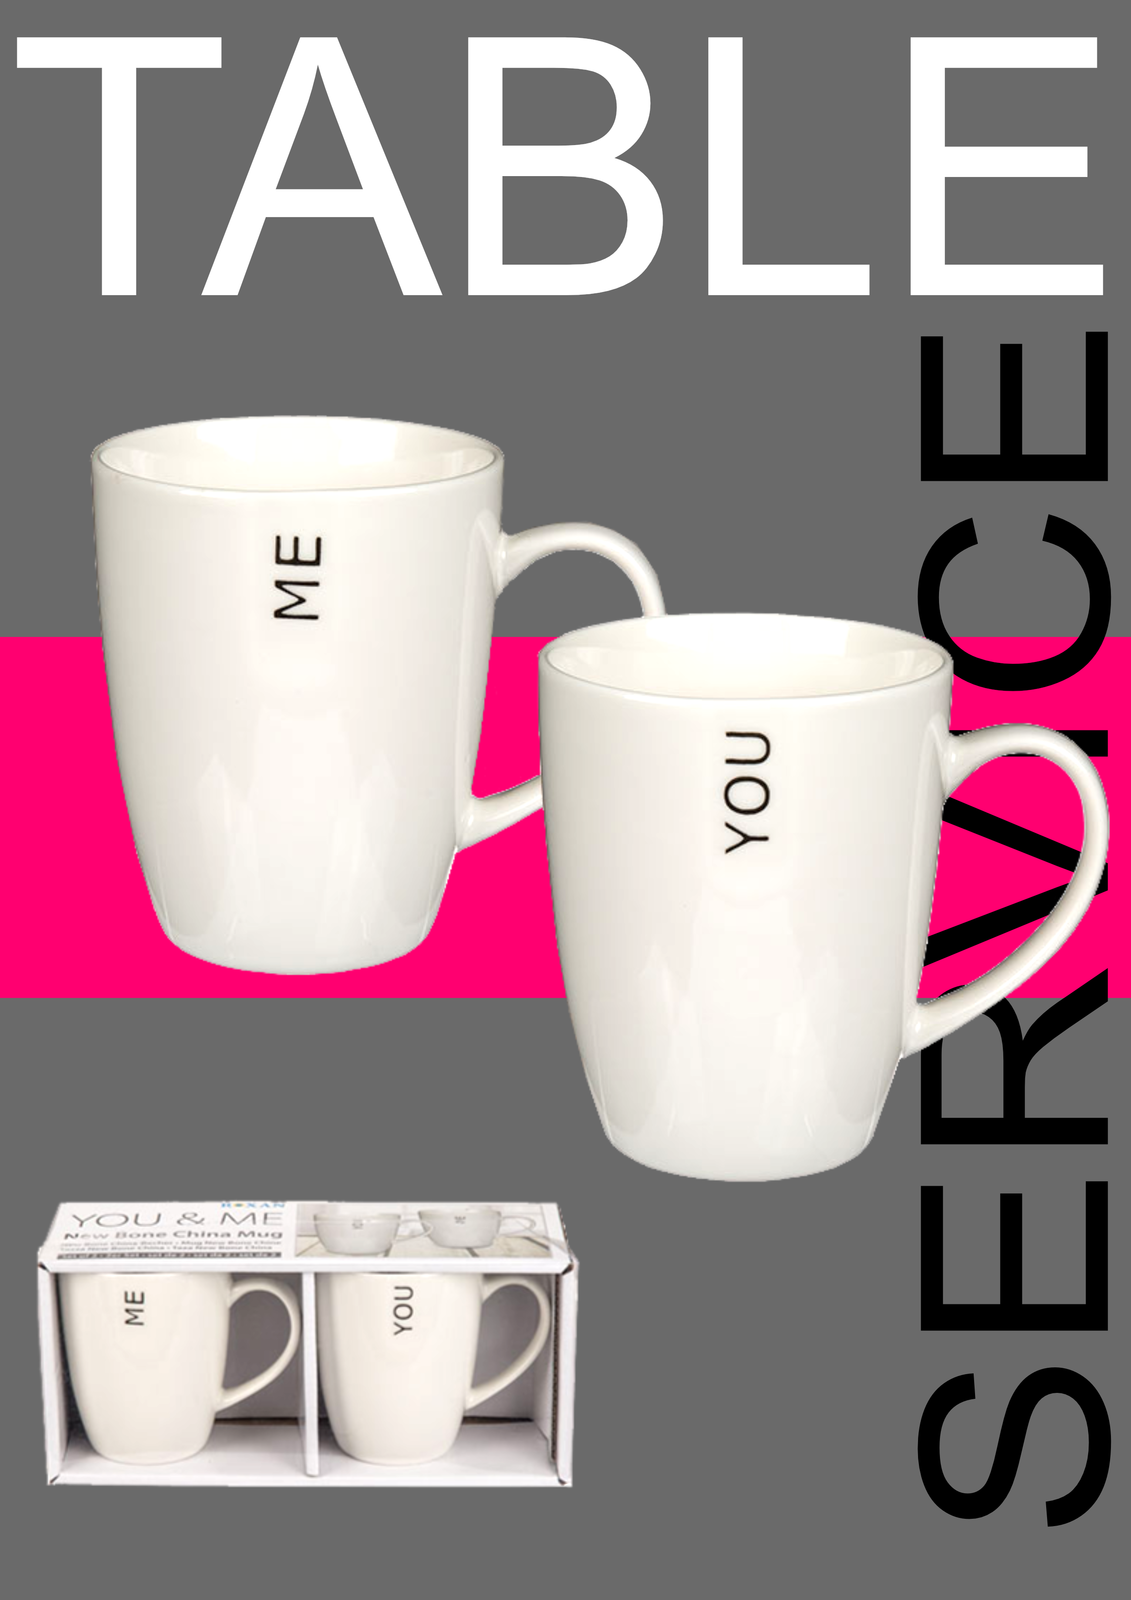 You and Me 2 Piece Bone China Mug Set 10 x 8 cm In a Presentation Gift Box